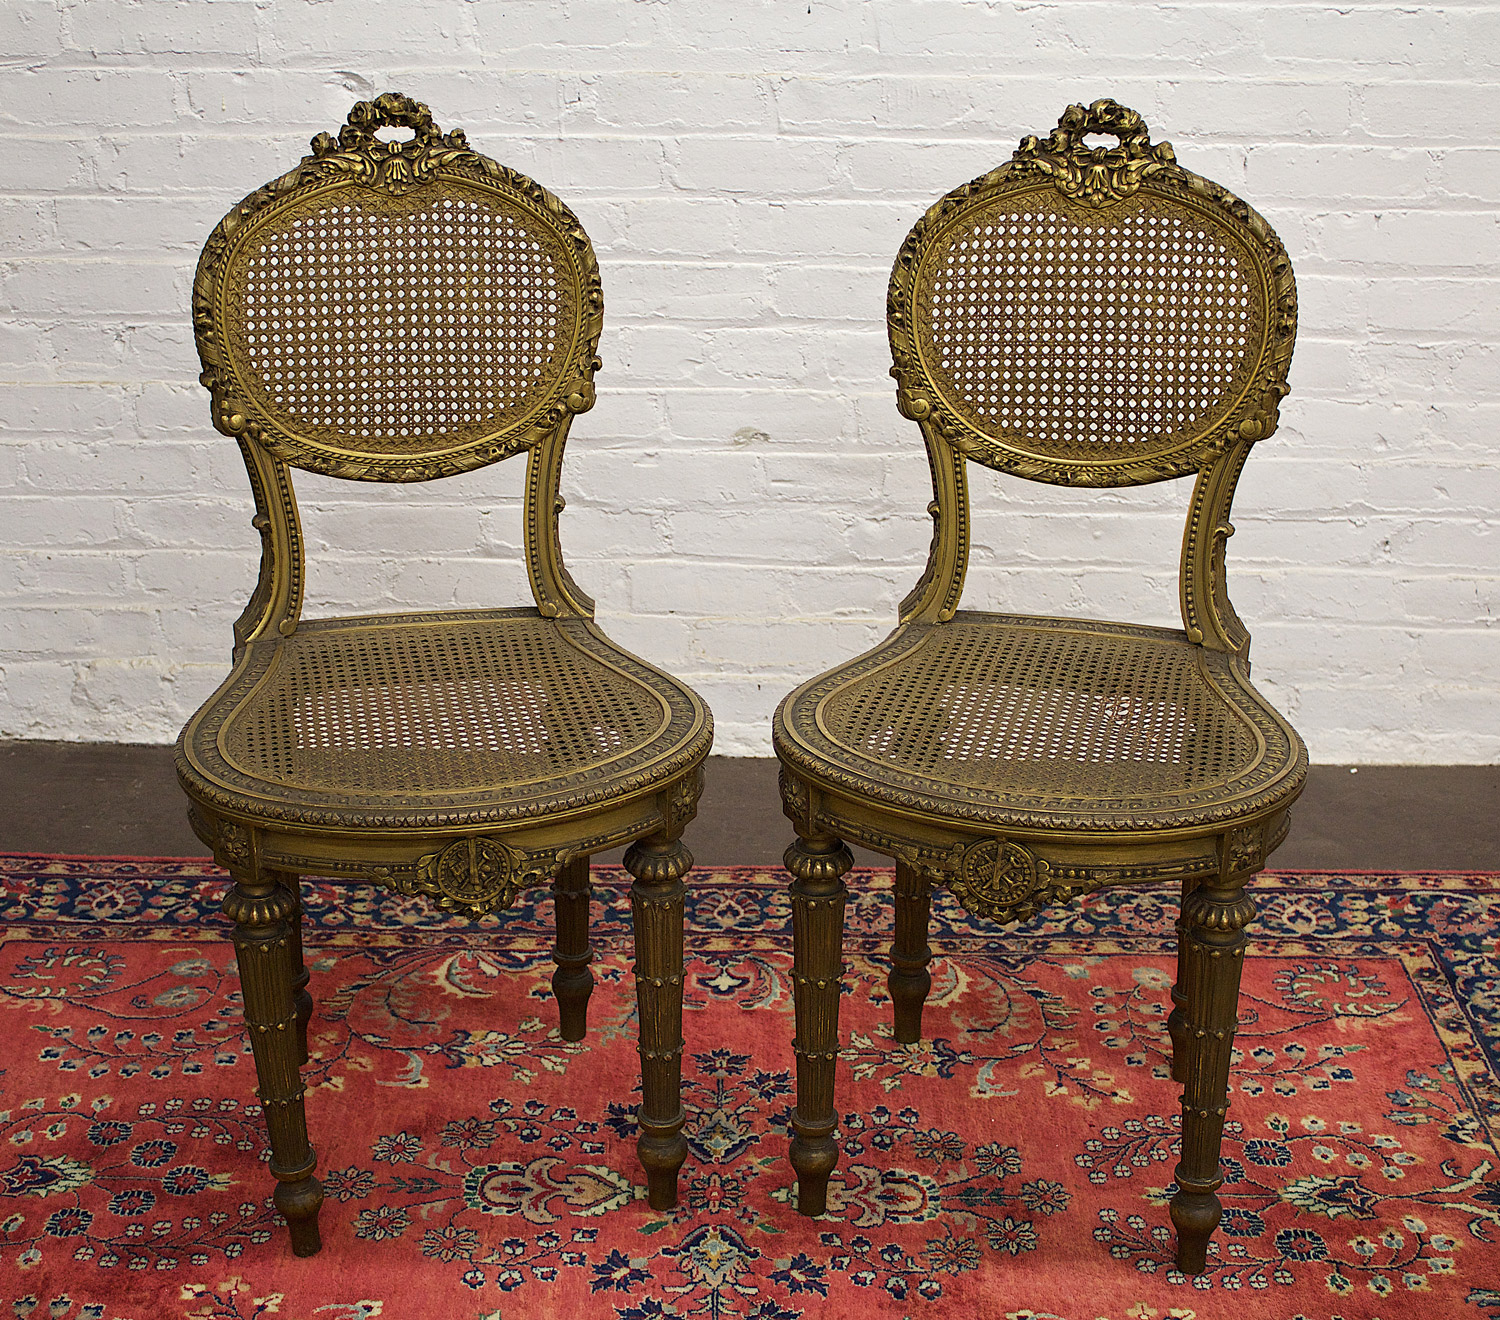 Chairs_Dore_